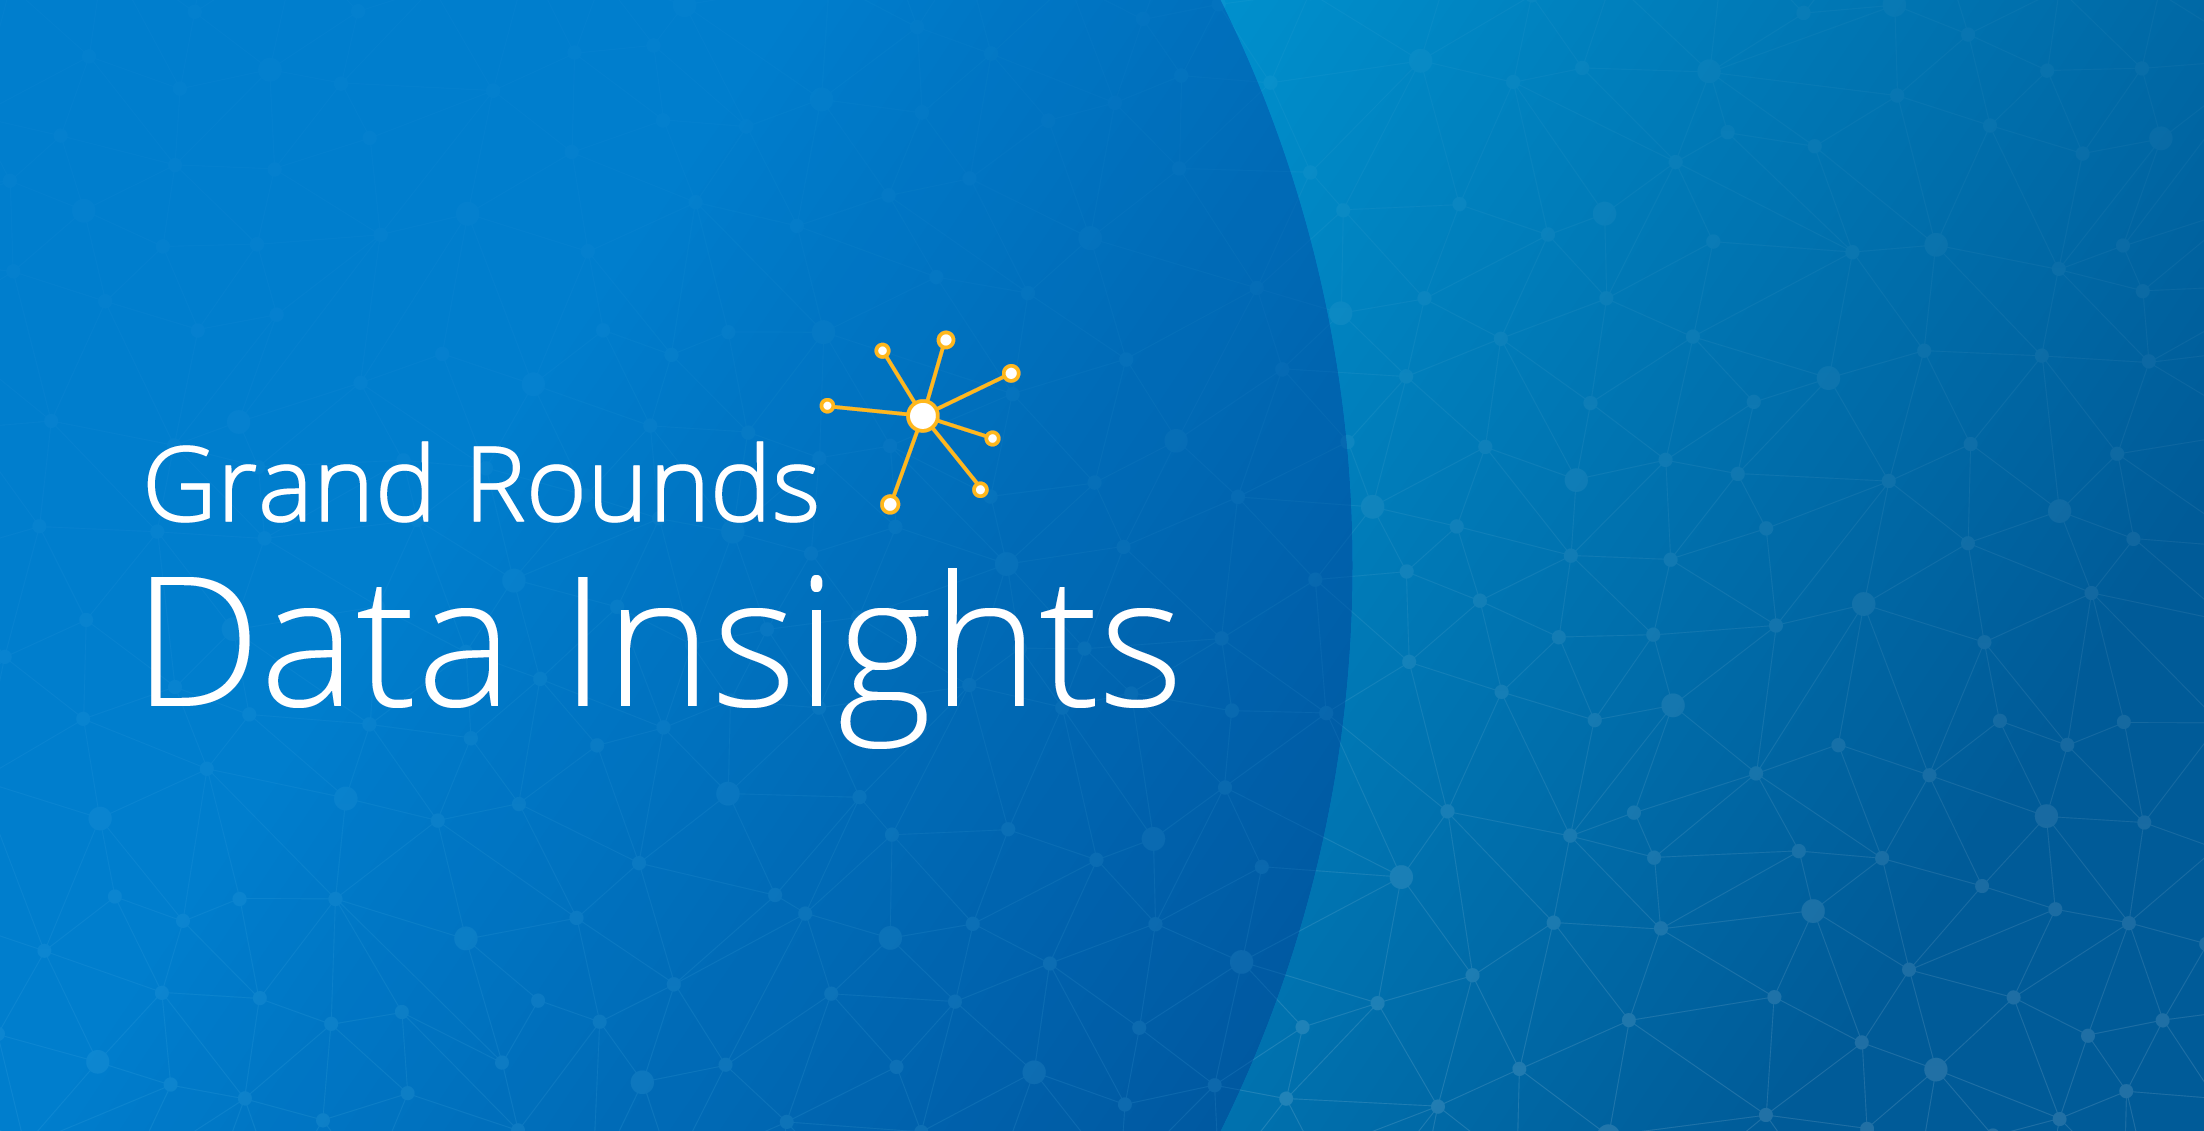 Gran Rounds Data insights